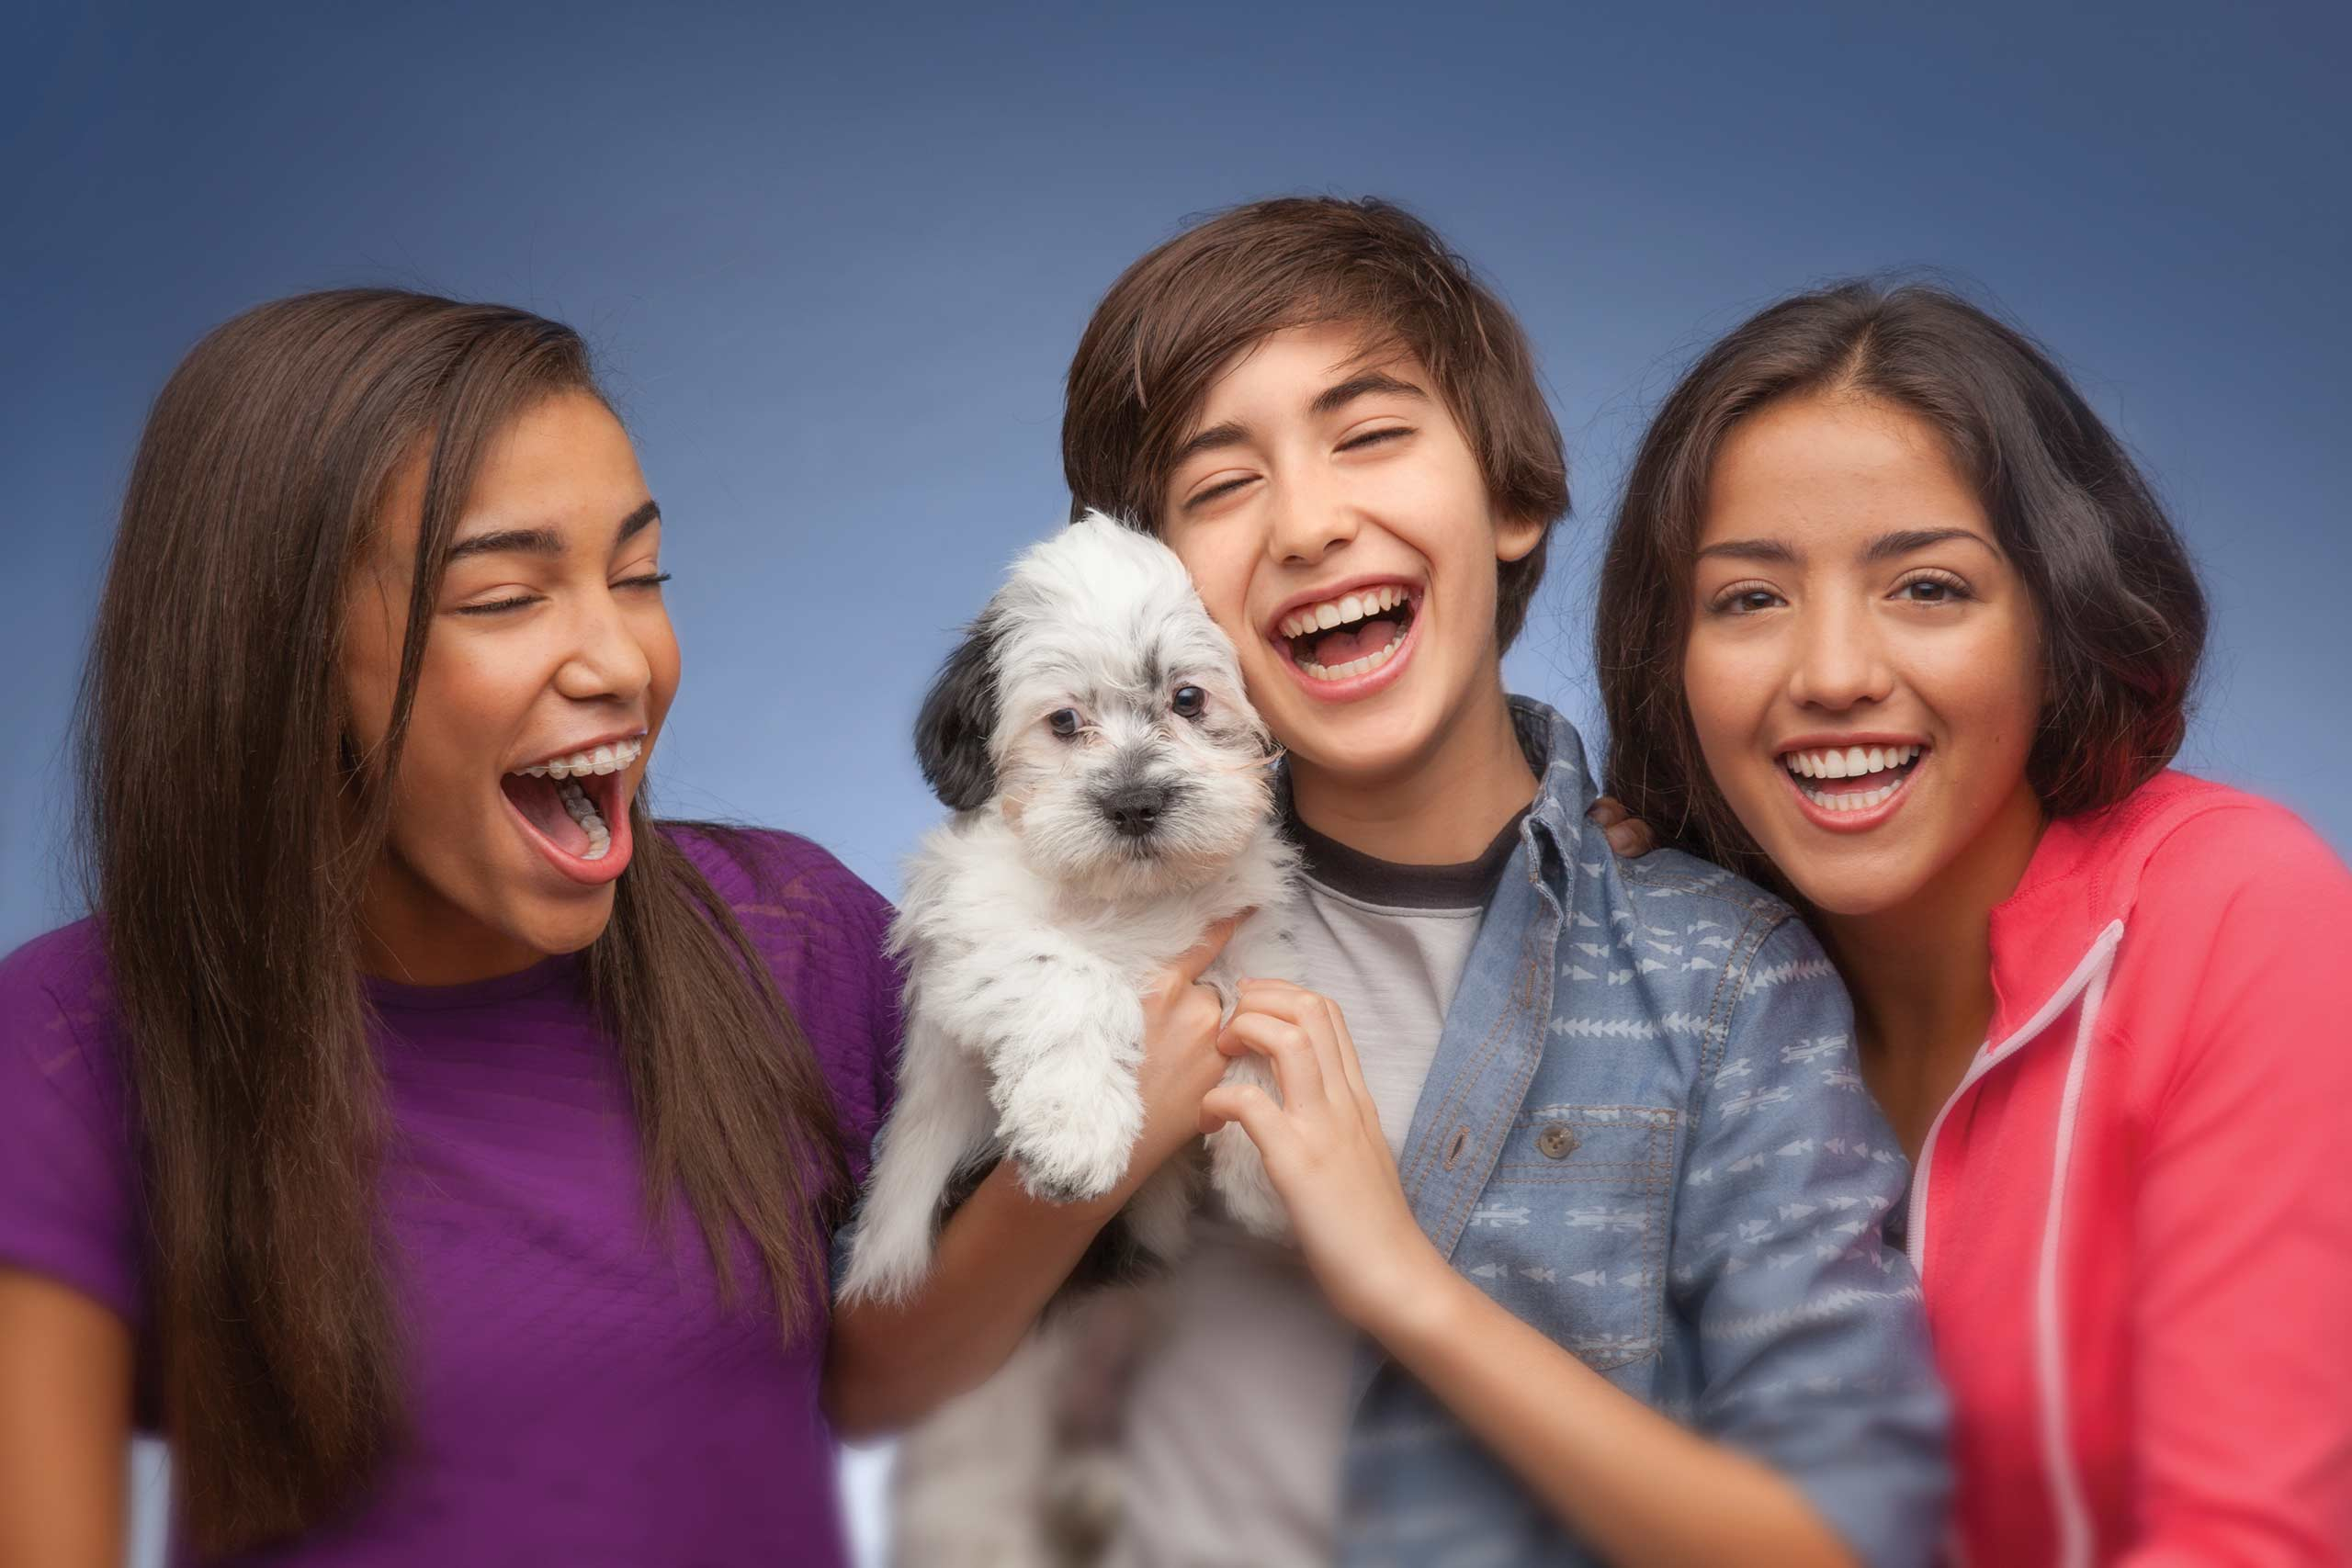 Teenagers with Puppy